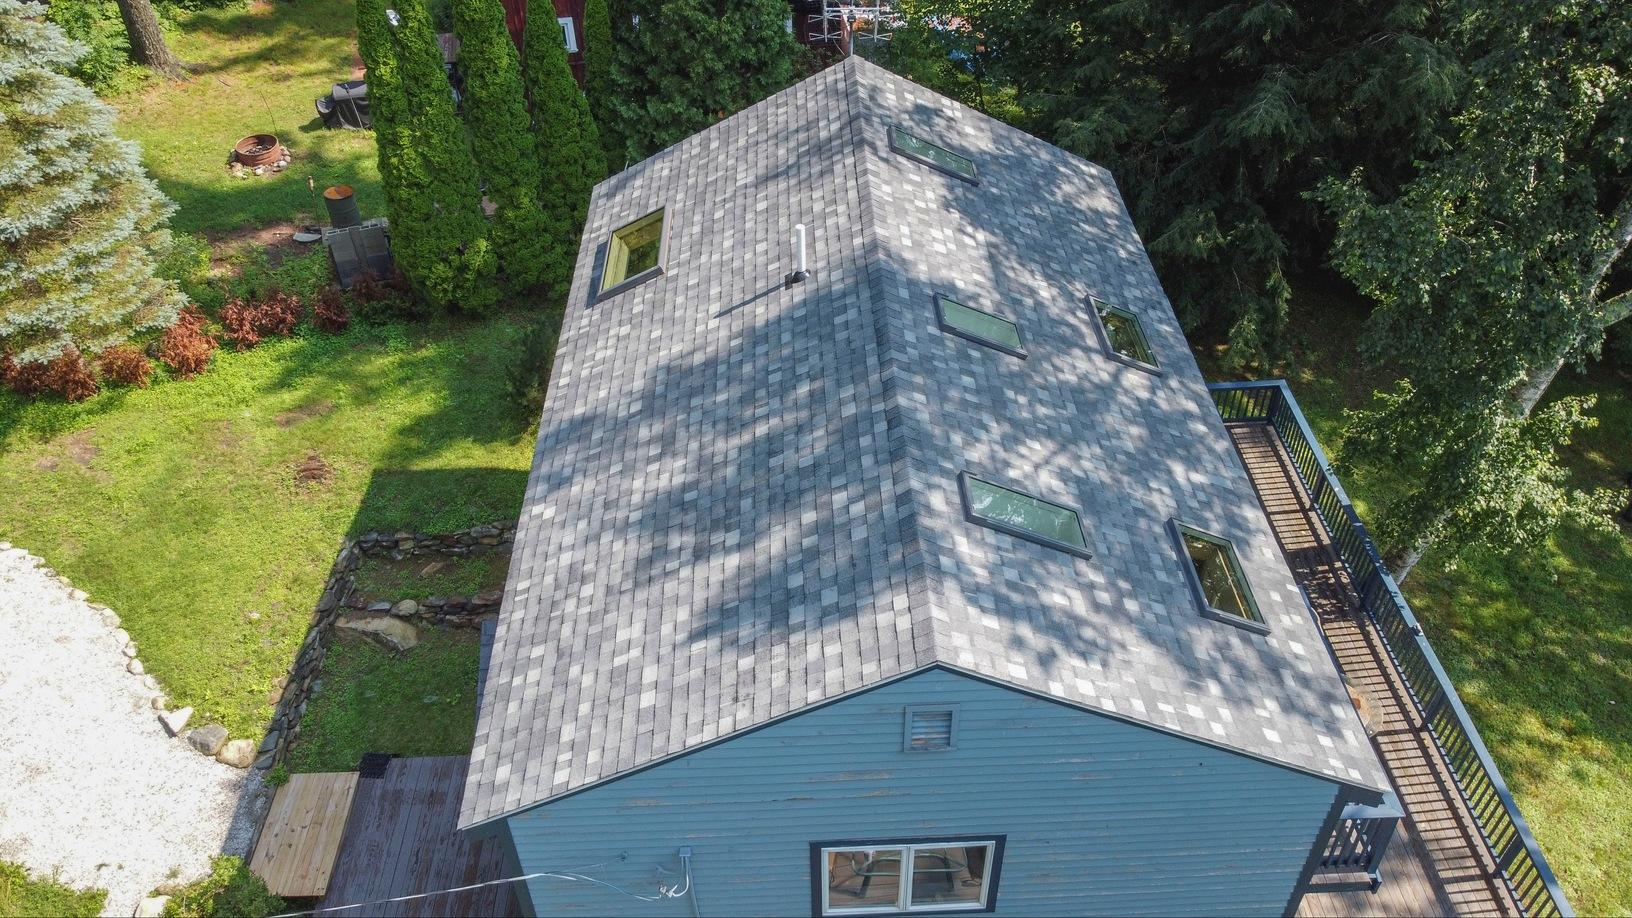 Klaus Total Roof Replacement with IKO Castle Grey Dynasty Shingles - After Photo